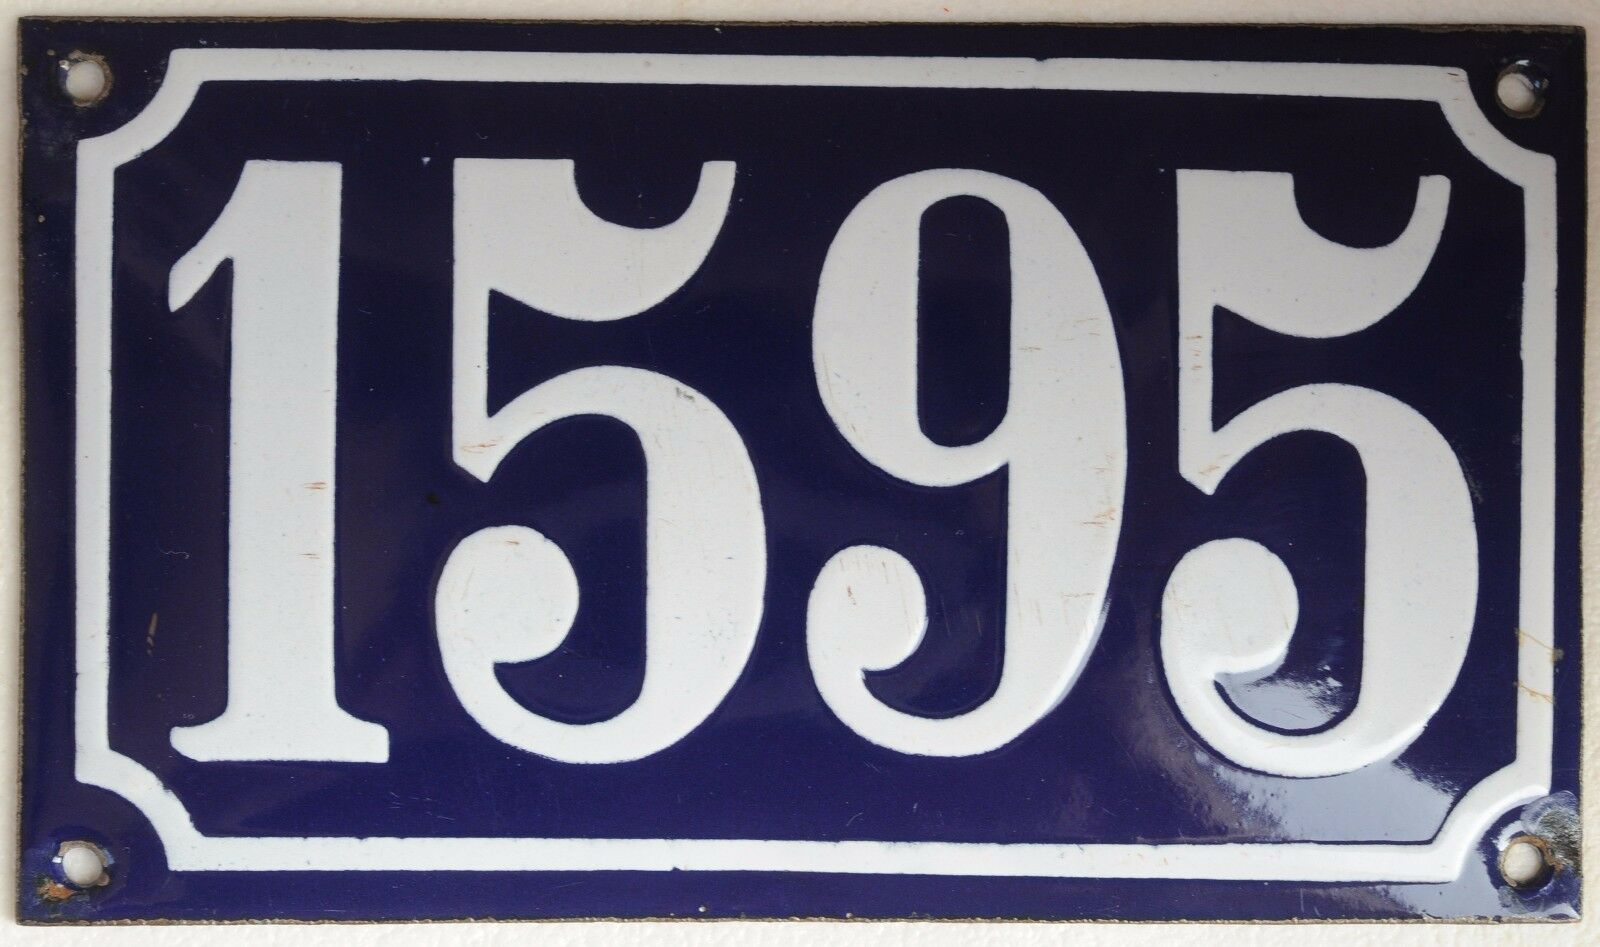 Old blue French house number 1595 door gate plate wall plaque enamel metal sign